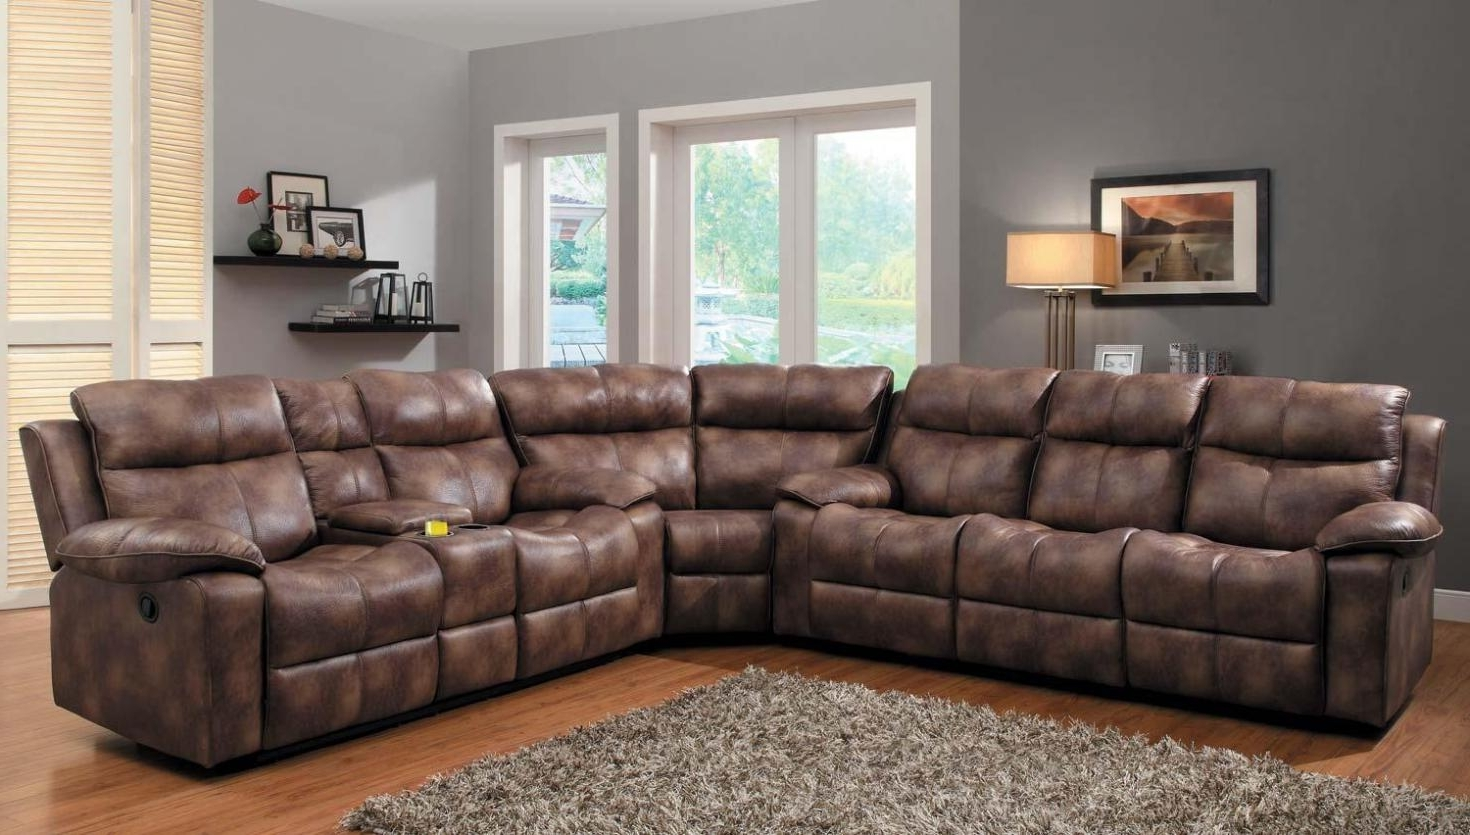 Gallery Of Clearance Sectional Sofas